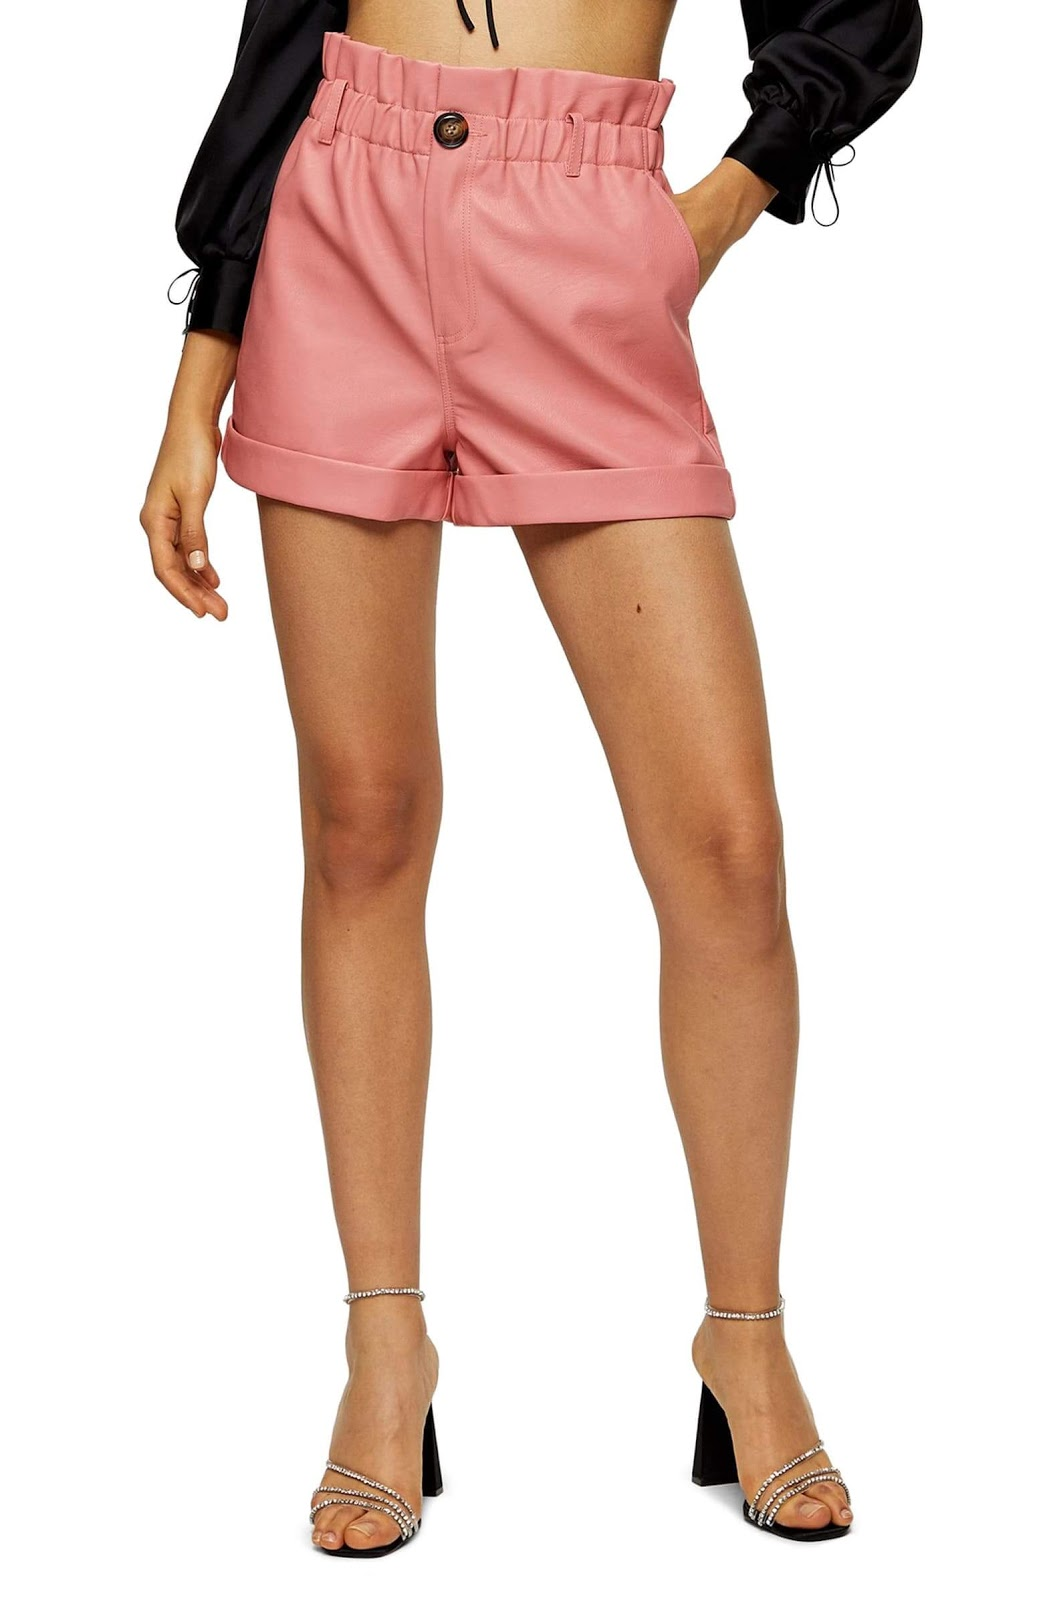 Leather shorts in a pink color.